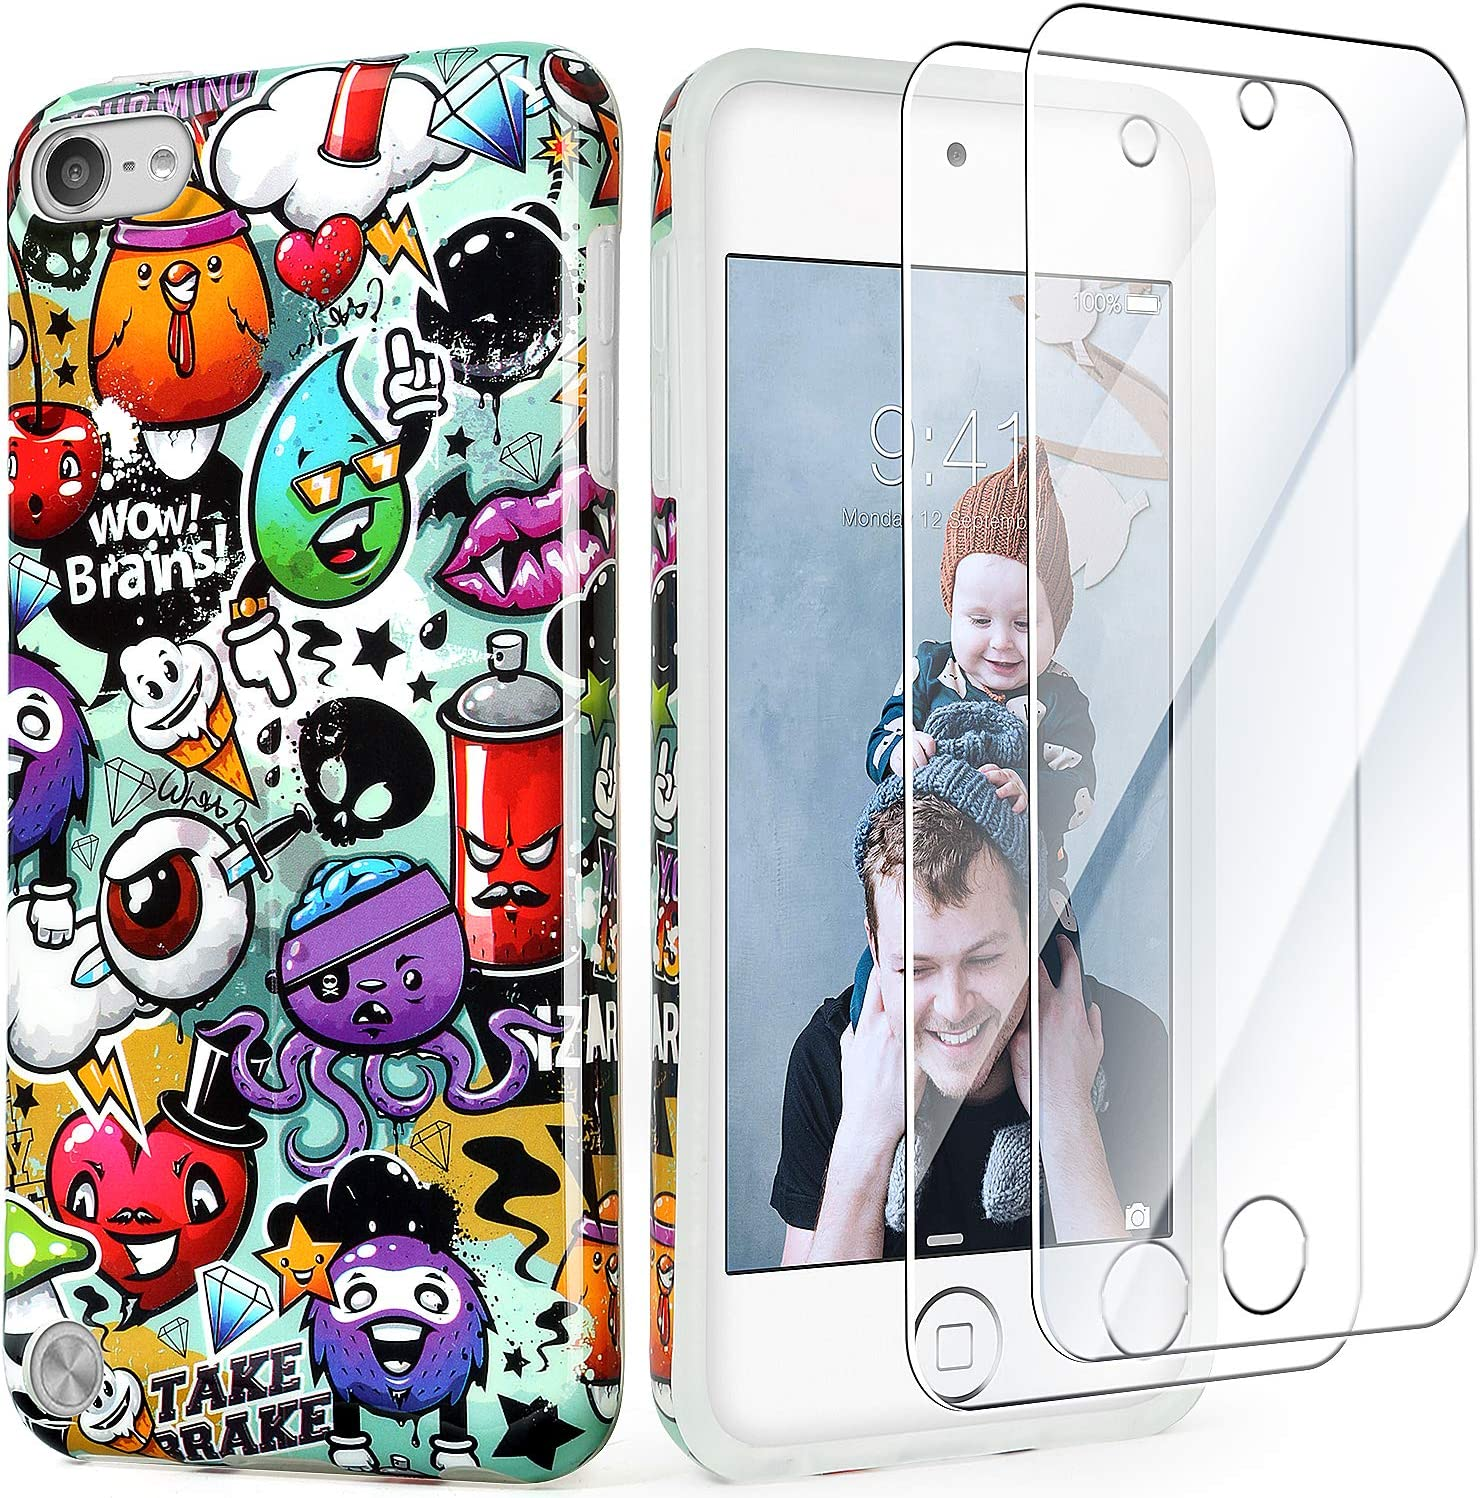 iPod Touch 7th Generation Case with 2 Screen Protectors, IDWELL Slim FIT Anti-Scratch Flexible Soft TPU Bumper Protective Case for iPod Touch 5/6/7th, Graffiti Art